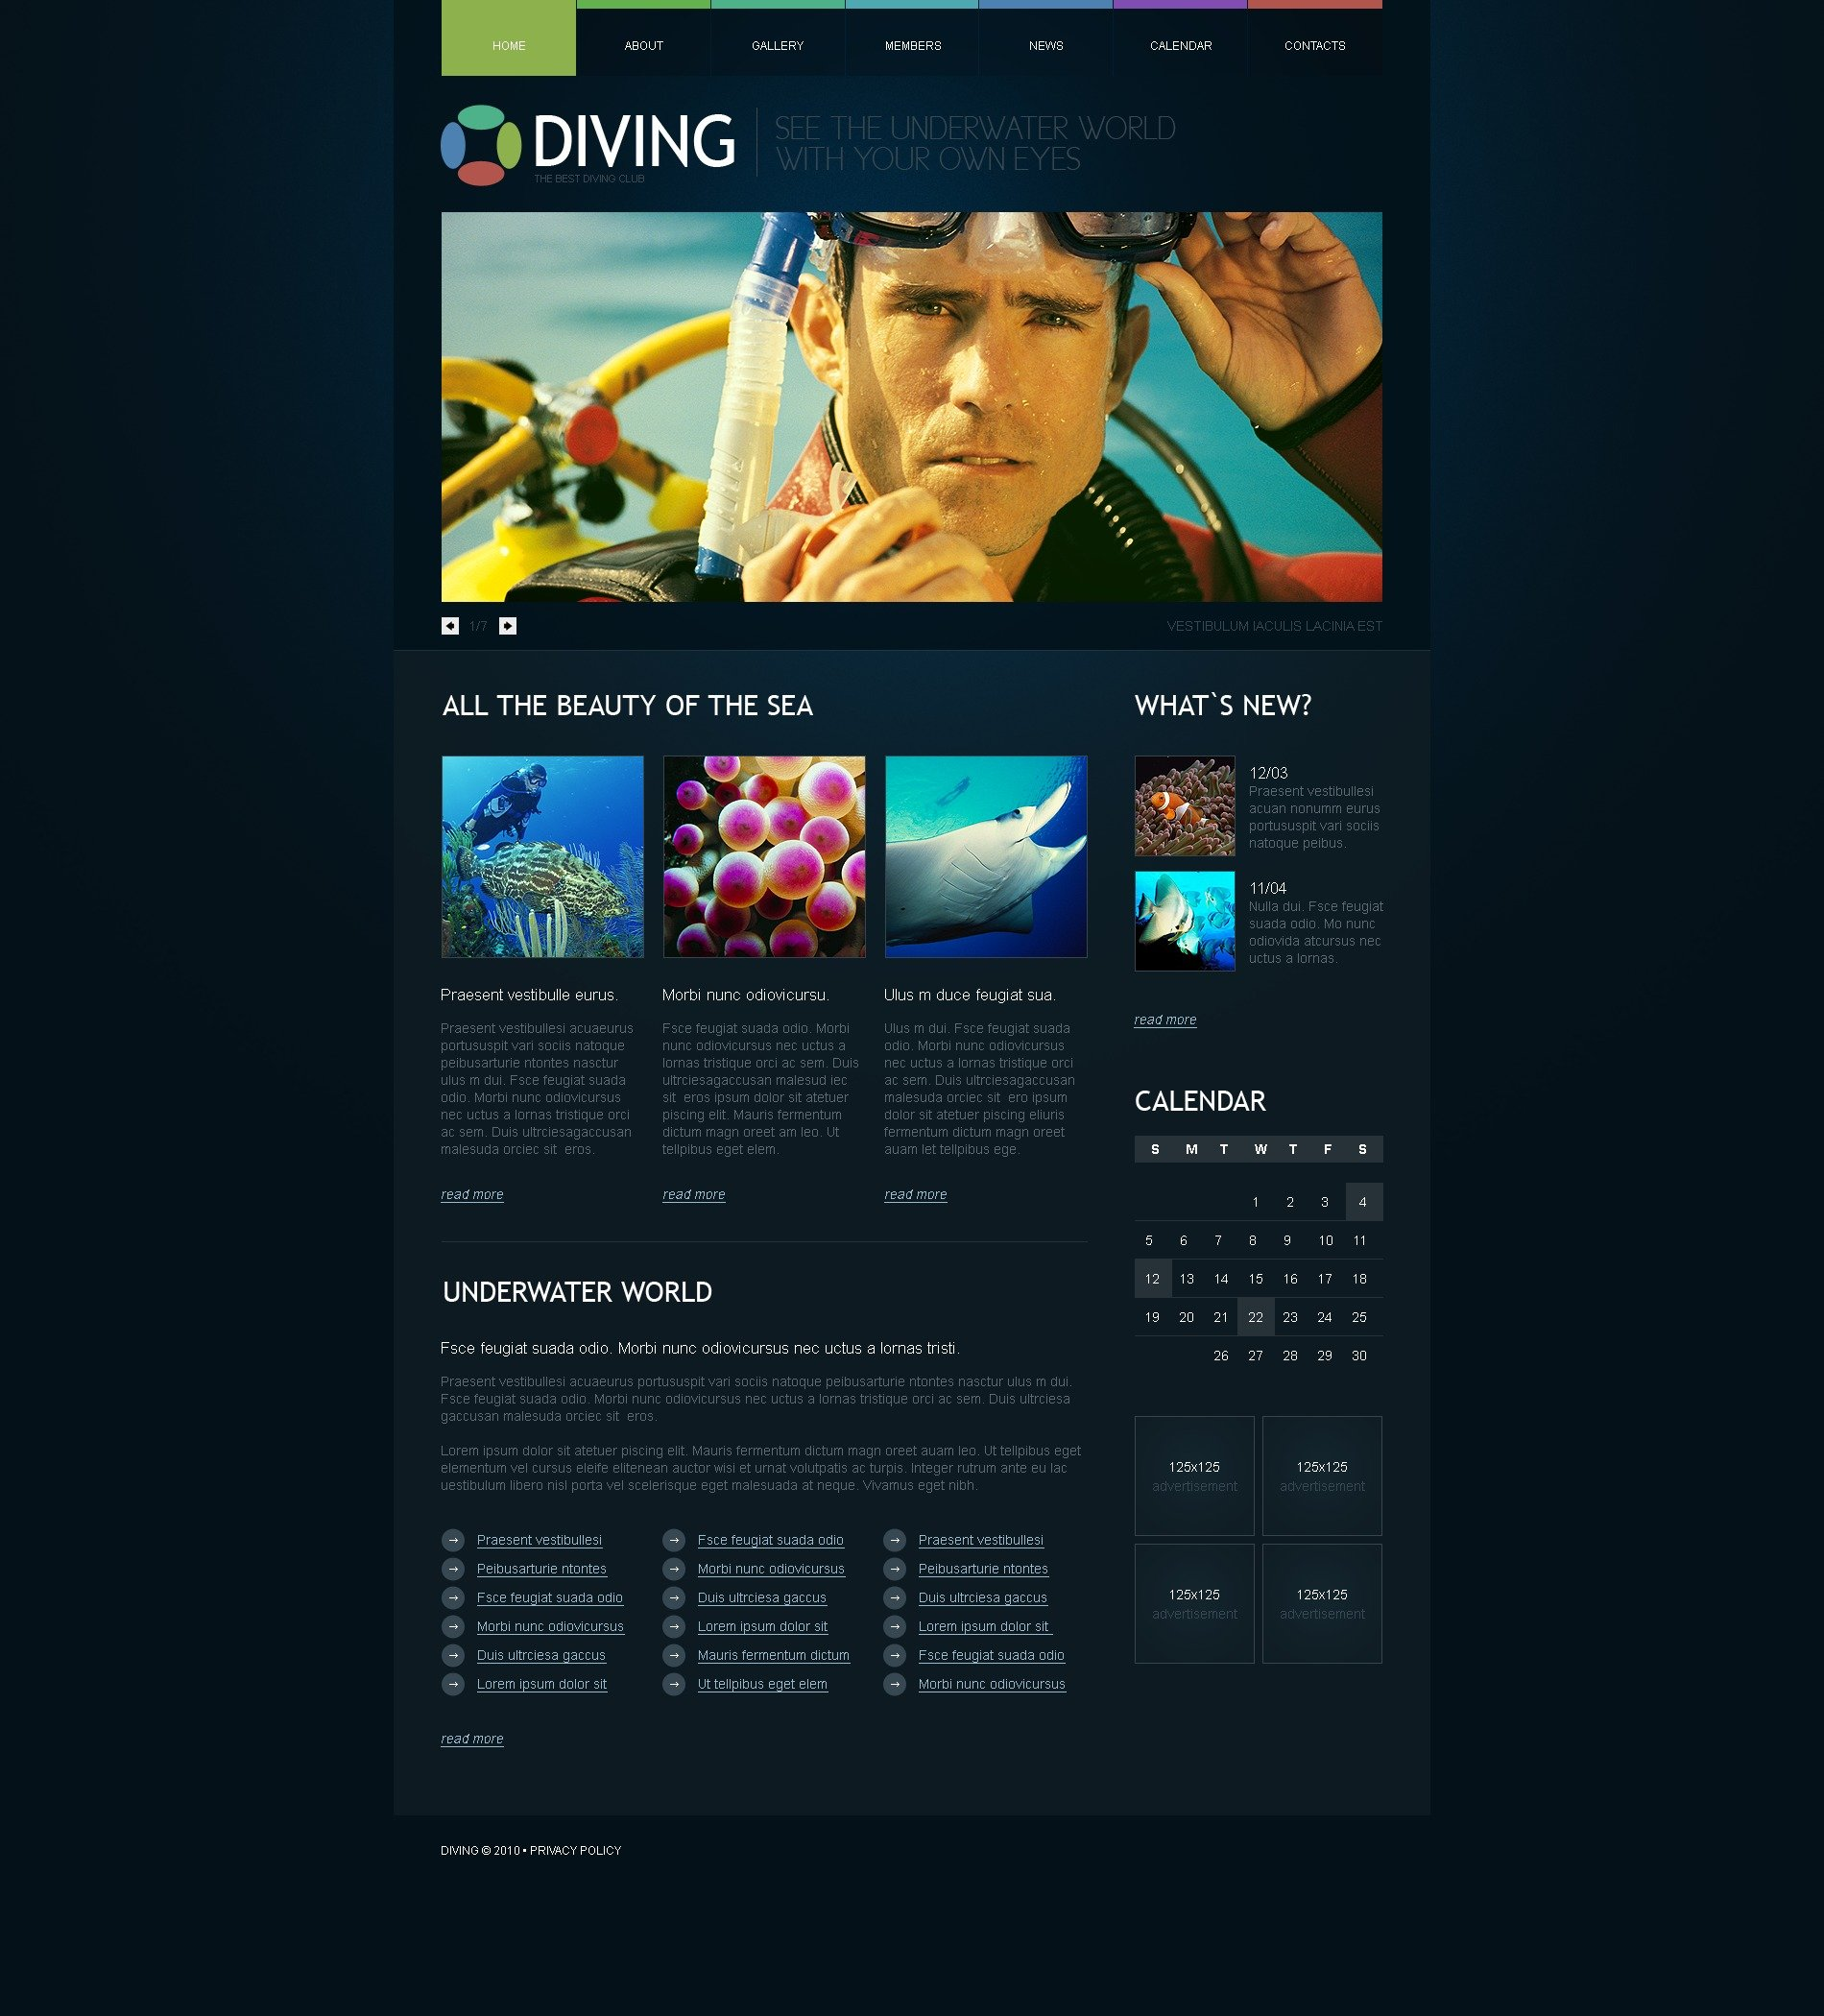 The Diving Club PSD Design 54406, one of the best PSD templates of its kind (sport, wide, jquery), also known as diving club PSD template, member PSD template, water PSD template, sea PSD template, ocean PSD template, wave PSD template, scuba-diver PSD template, aqualung PSD template, submarine PSD template, underwater PSD template, oxygen PSD template, fish PSD template, coral PSD template, flippers PSD template, mask PSD template, reef PSD template, diving-suit PSD template, photography PSD template, camera PSD template, training PSD template, services PSD template, trainer PSD template, ring-buoy PSD template, life-guard PSD template, subscription PSD template, rules PSD template, travel PSD template, equipment and related with diving club, member, water, sea, ocean, wave, scuba-diver, aqualung, submarine, underwater, oxygen, fish, coral, flippers, mask, reef, diving-suit, photography, camera, training, services, trainer, ring-buoy, life-guard, subscription, rules, travel, equipment, etc.